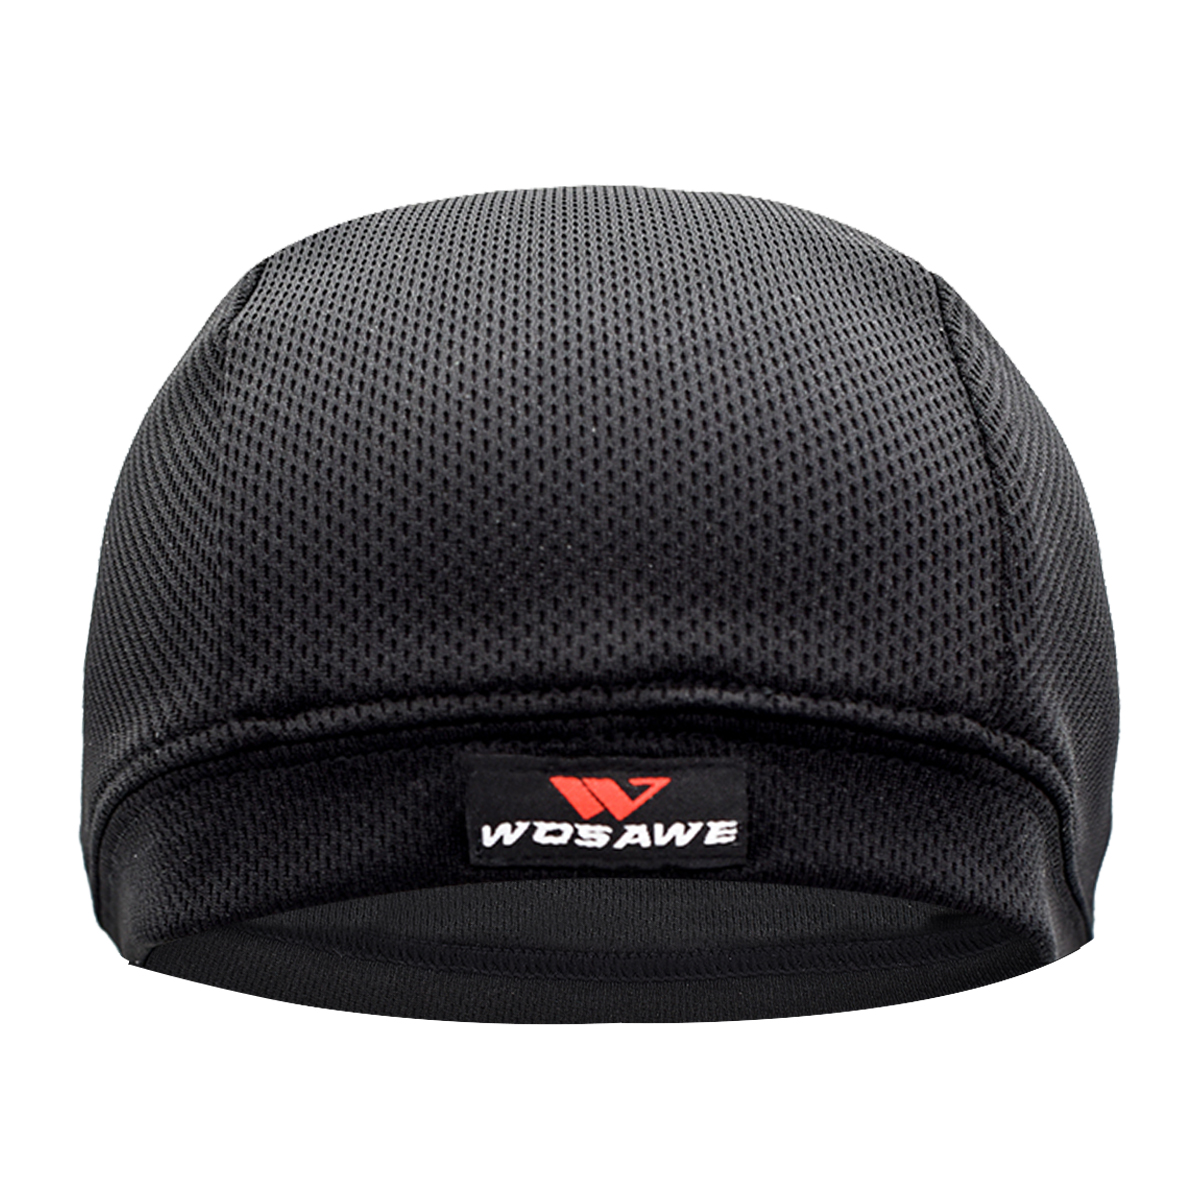 5a27f00b0006b Breathable Quick Dry Cap Bicycle Motorcycle Helmet Liner Cap.